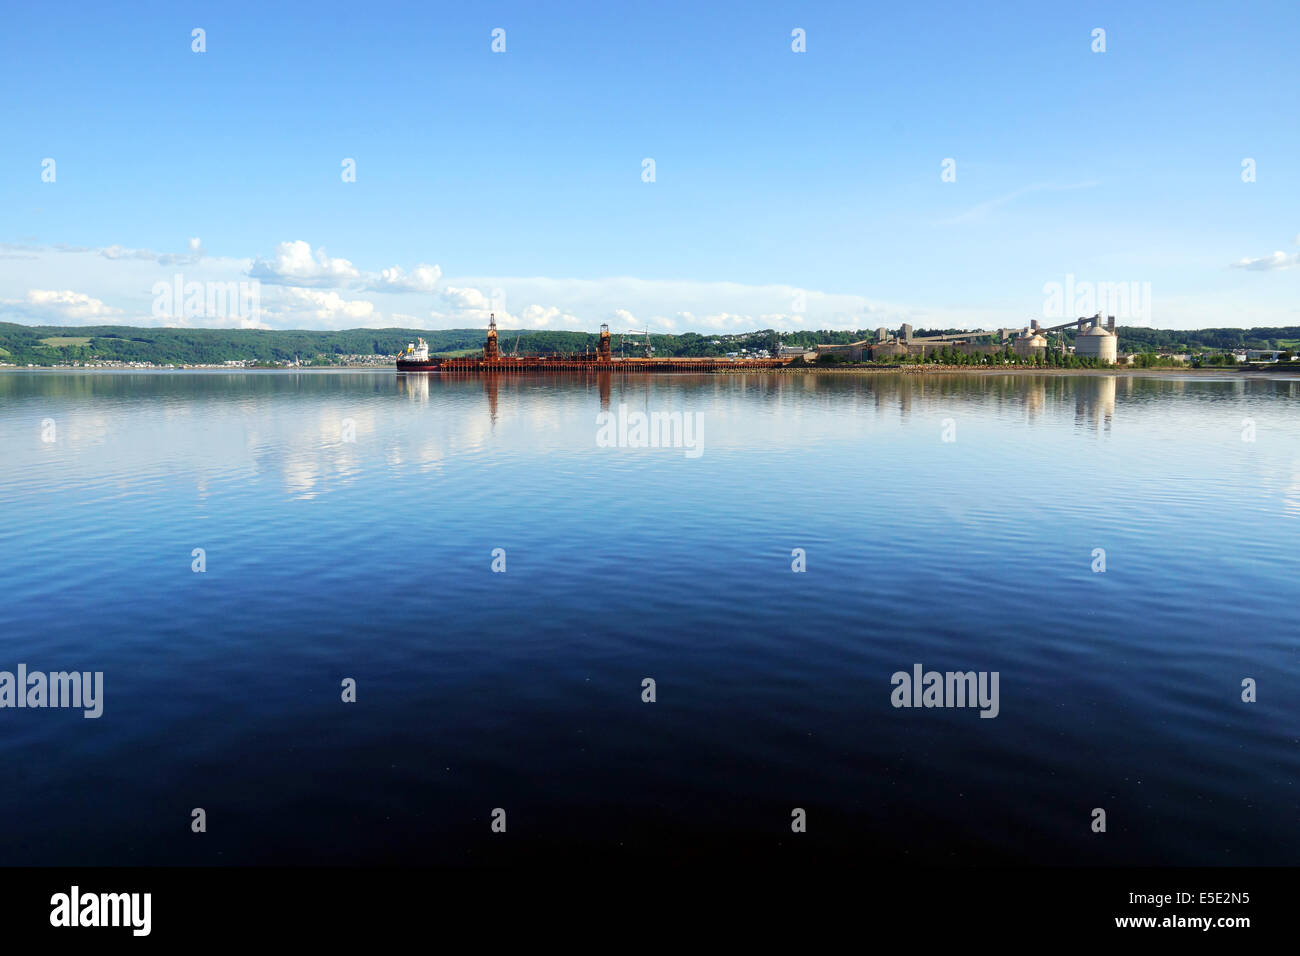 Industrial port in deep water fjord bay - Stock Image